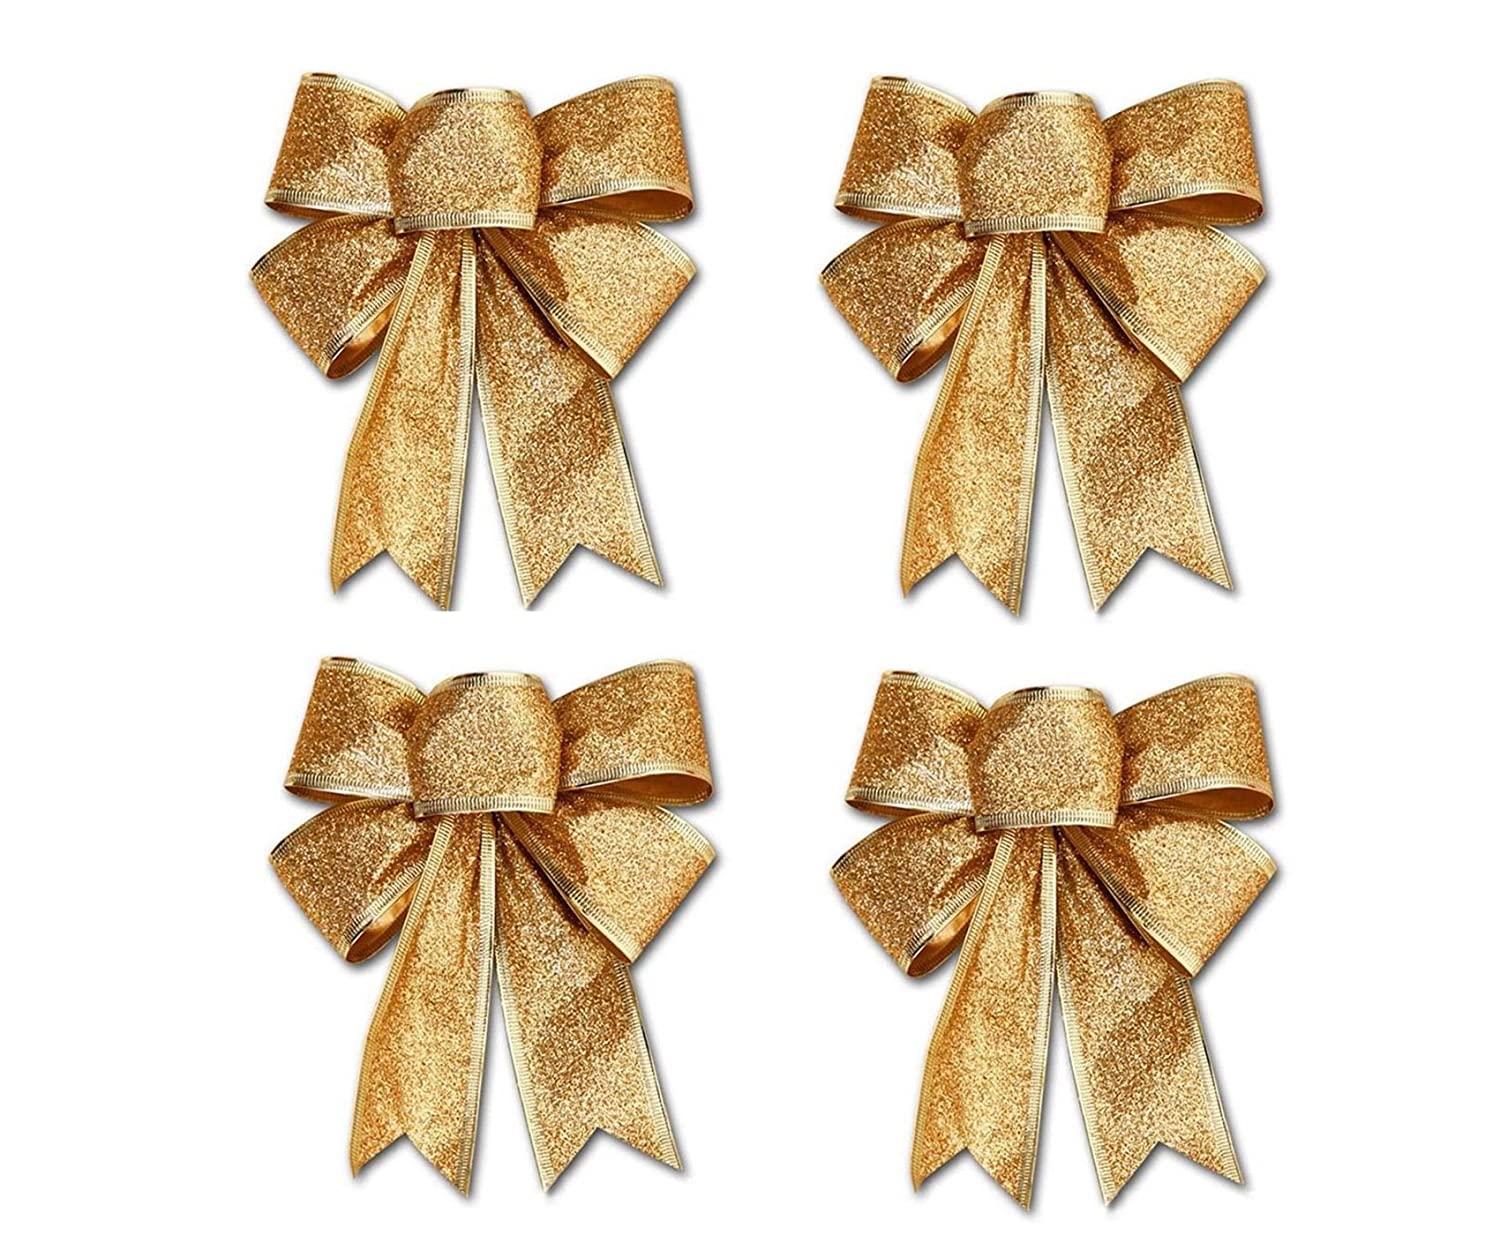 Mini Gold Ribbon Bows Crafts Party Christmas Decoration Bows Tree Bowknots Garden Ornament Pack of 24